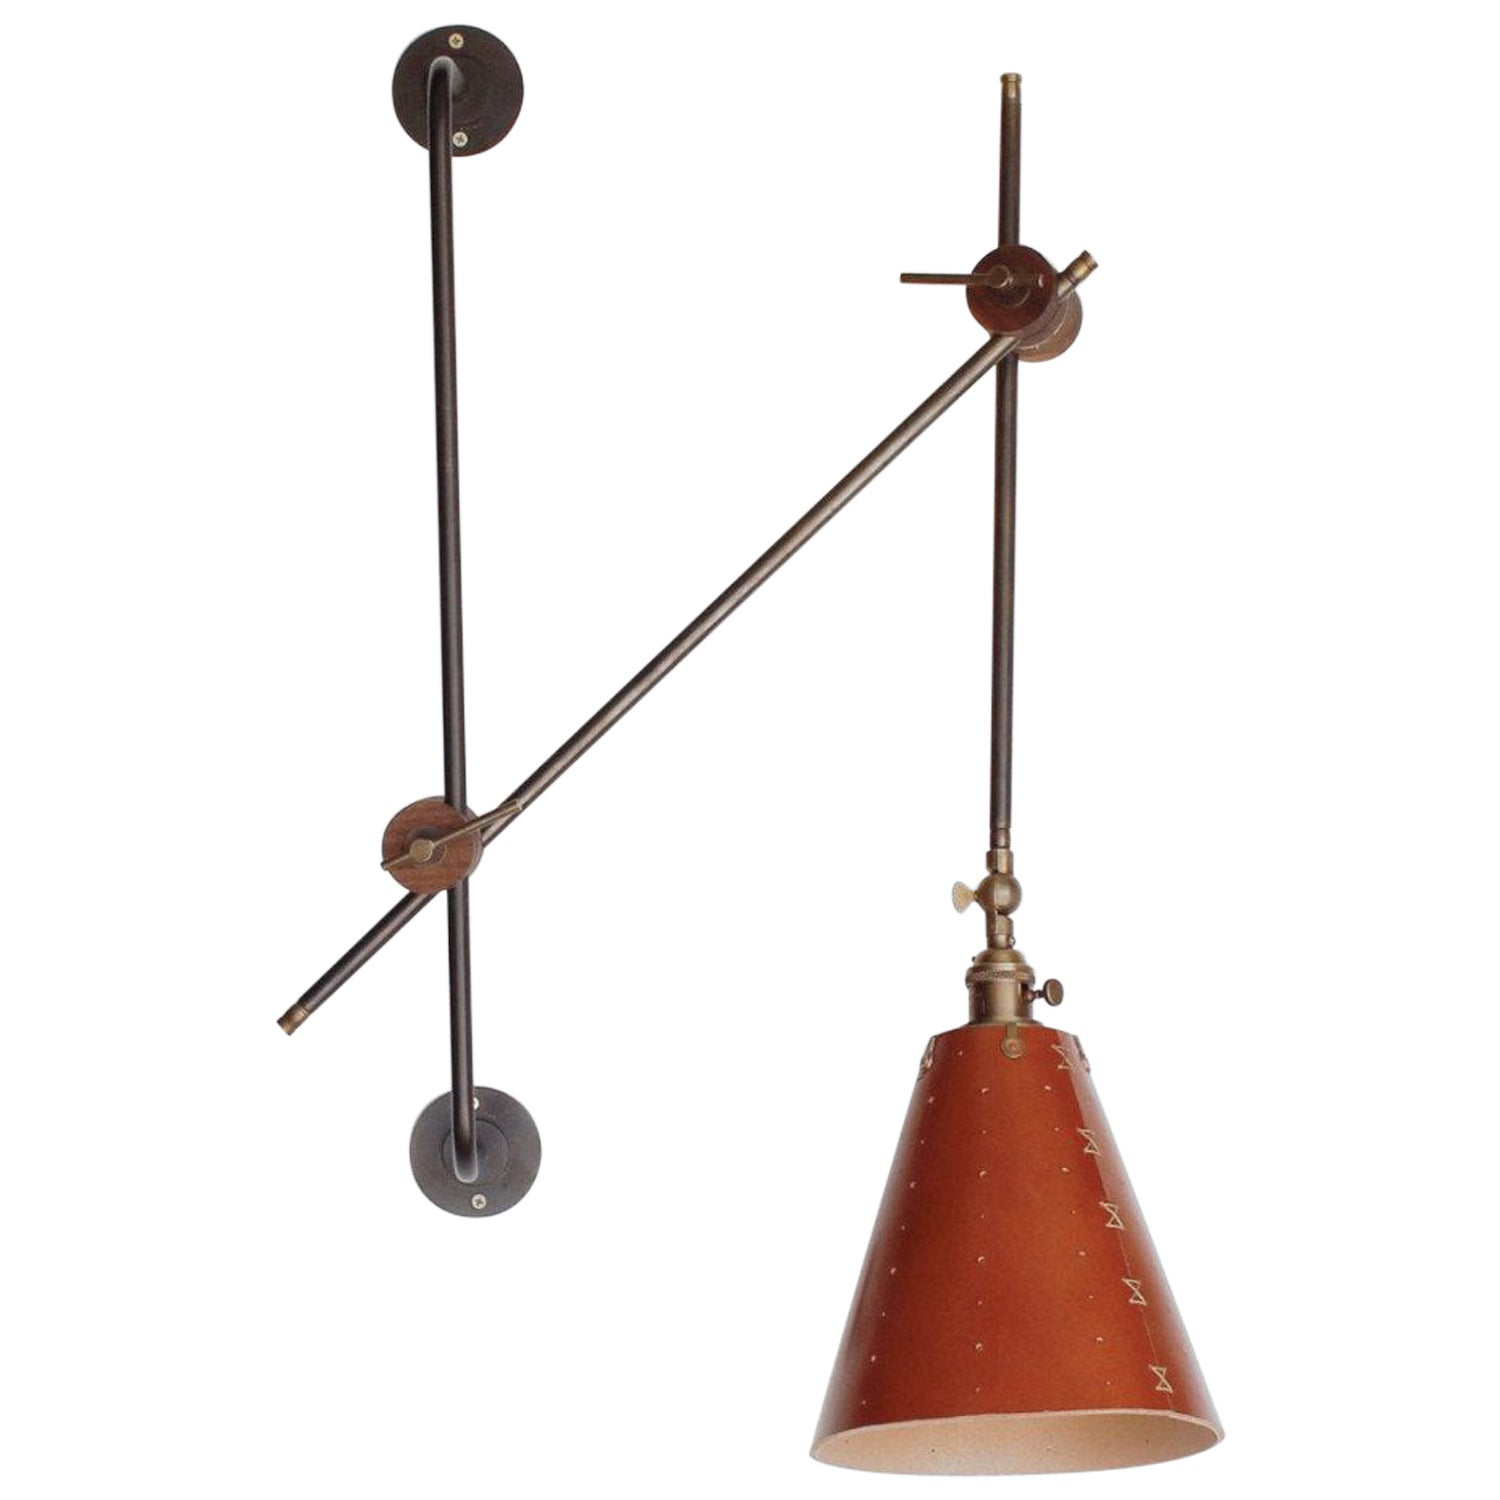 Modern Brass Grace Articulating Wall Sconce in Tan Leather